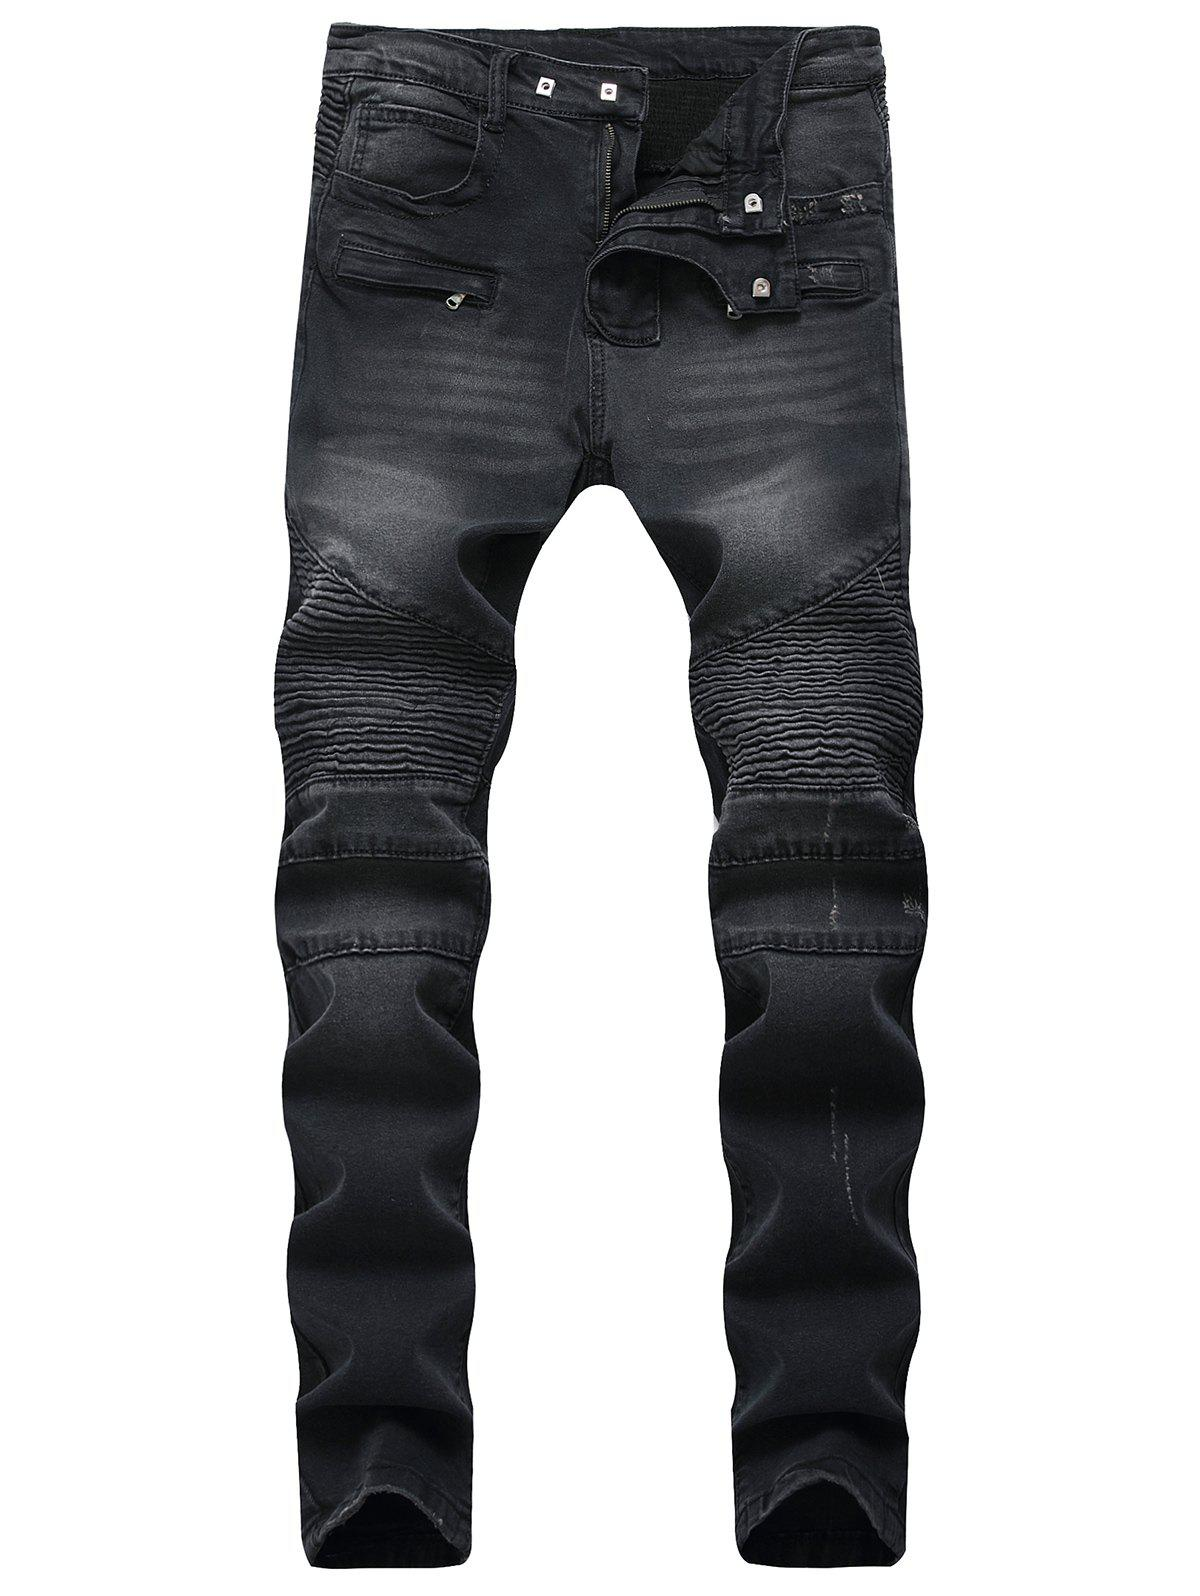 Patchwork Pleated Tapered Biker Jeans - BLACK 36